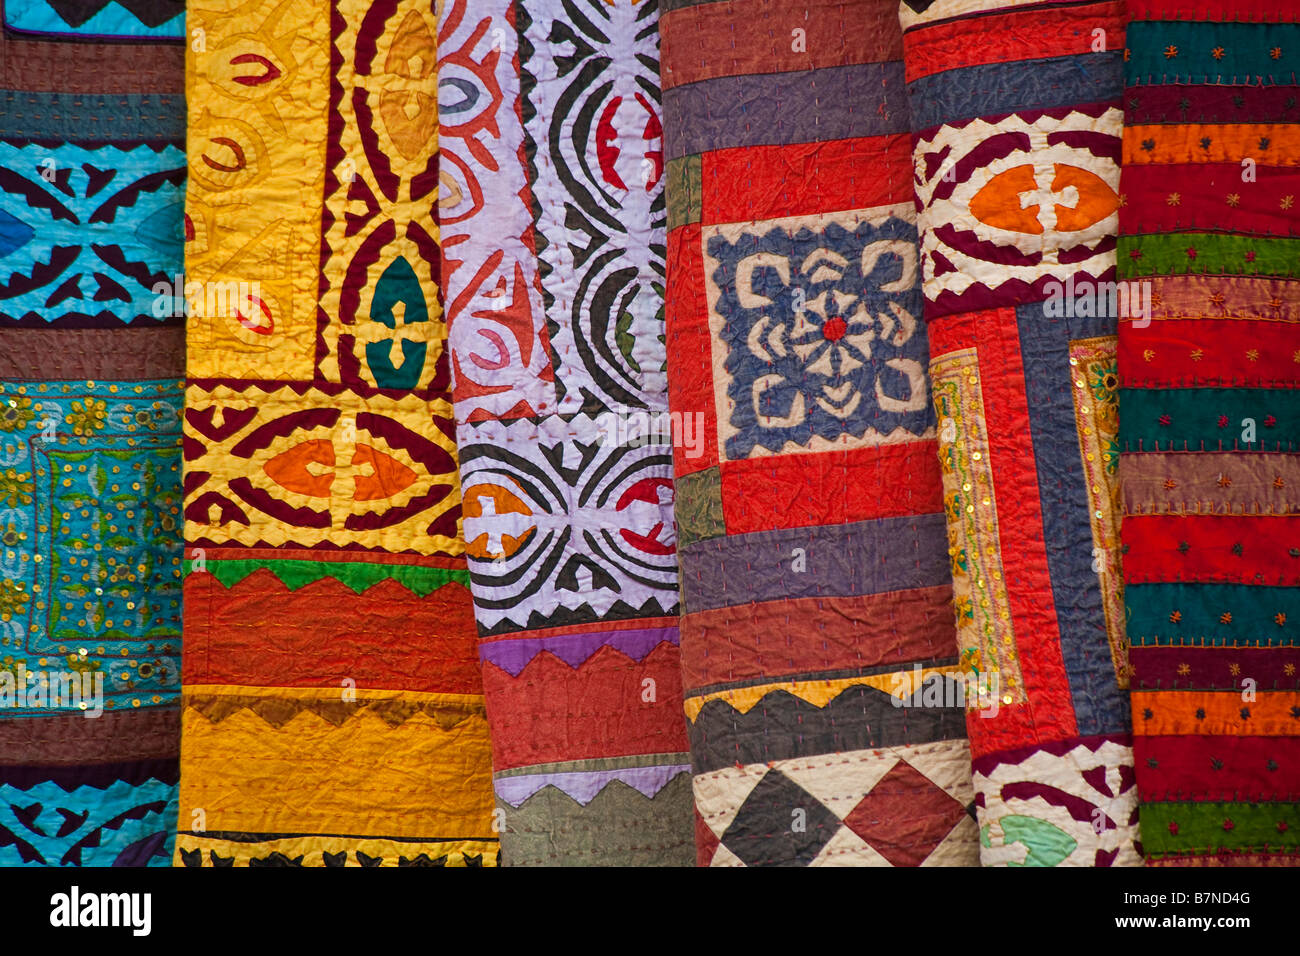 Colorful Rugs And Blankets Sold By The Street Vendors Of Santa Fe